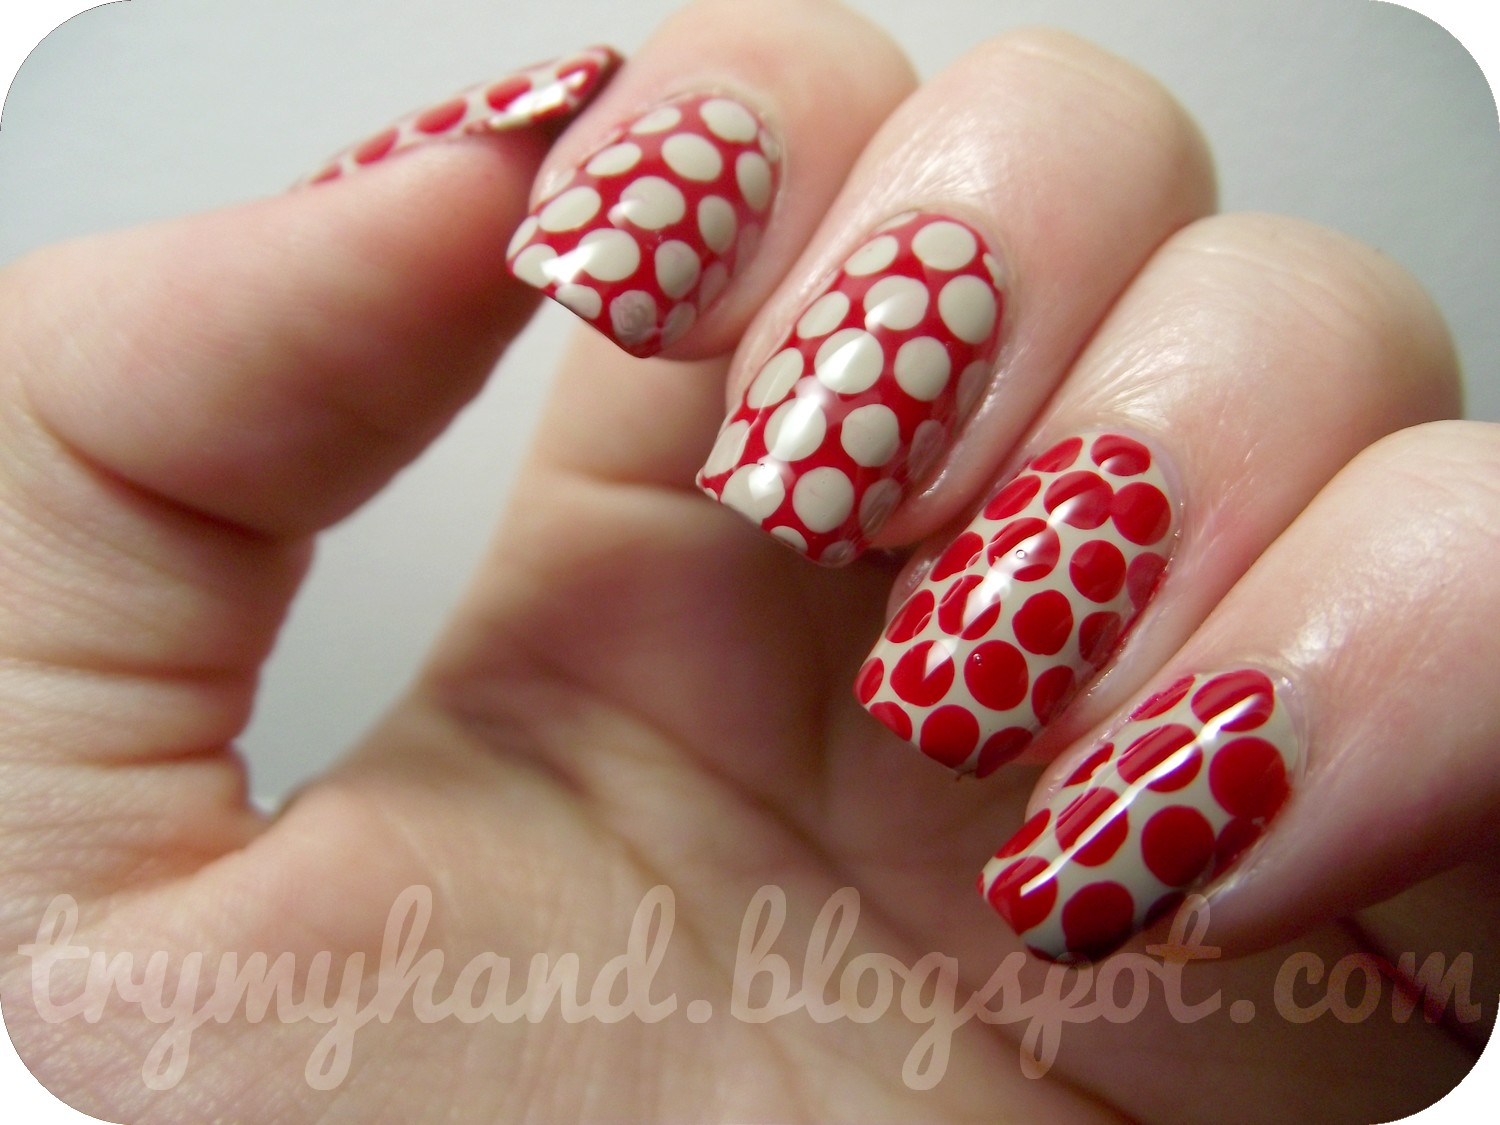 Try My Hand: 15 Day Nail Challenge (Day 9) : Red Nails